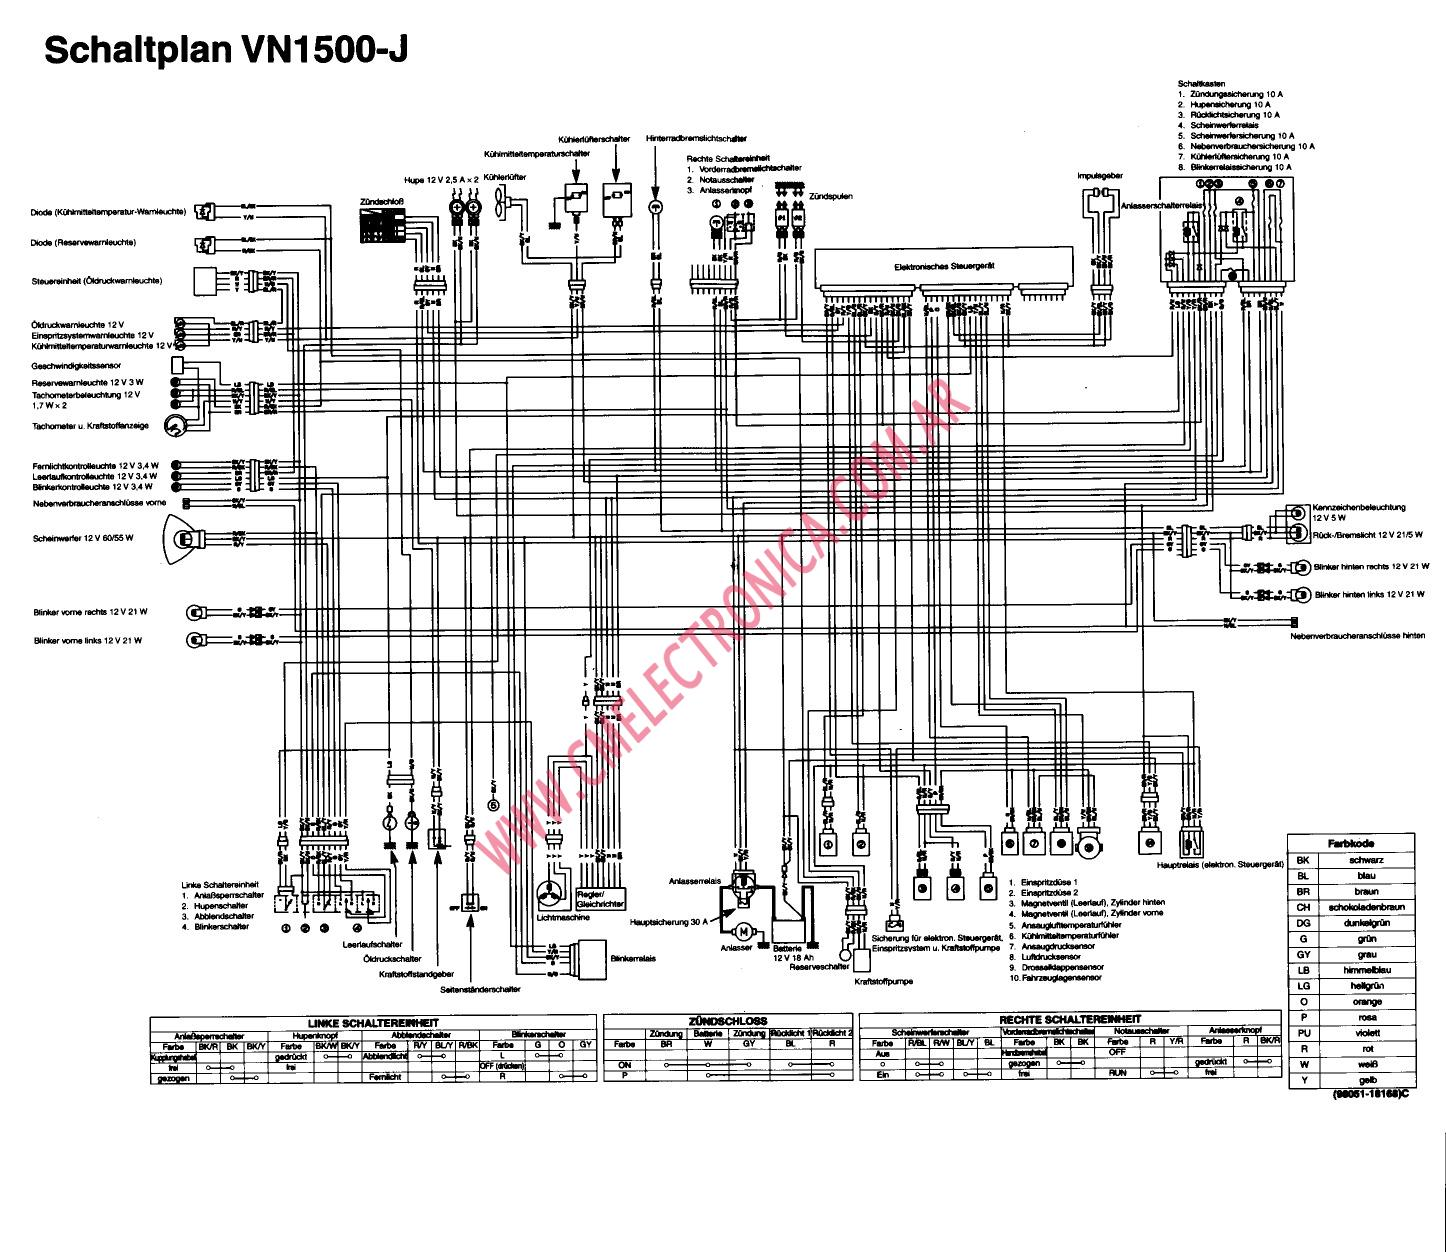 Kawasaki Atv 750 Engine Diagram in addition 2009 Altima Fuse Box together with 597943 additionally Polaris Ranger 500 Engine Diagram also Kawasaki 2510 Fuel Pump. on 2000 kawasaki mule engine specs